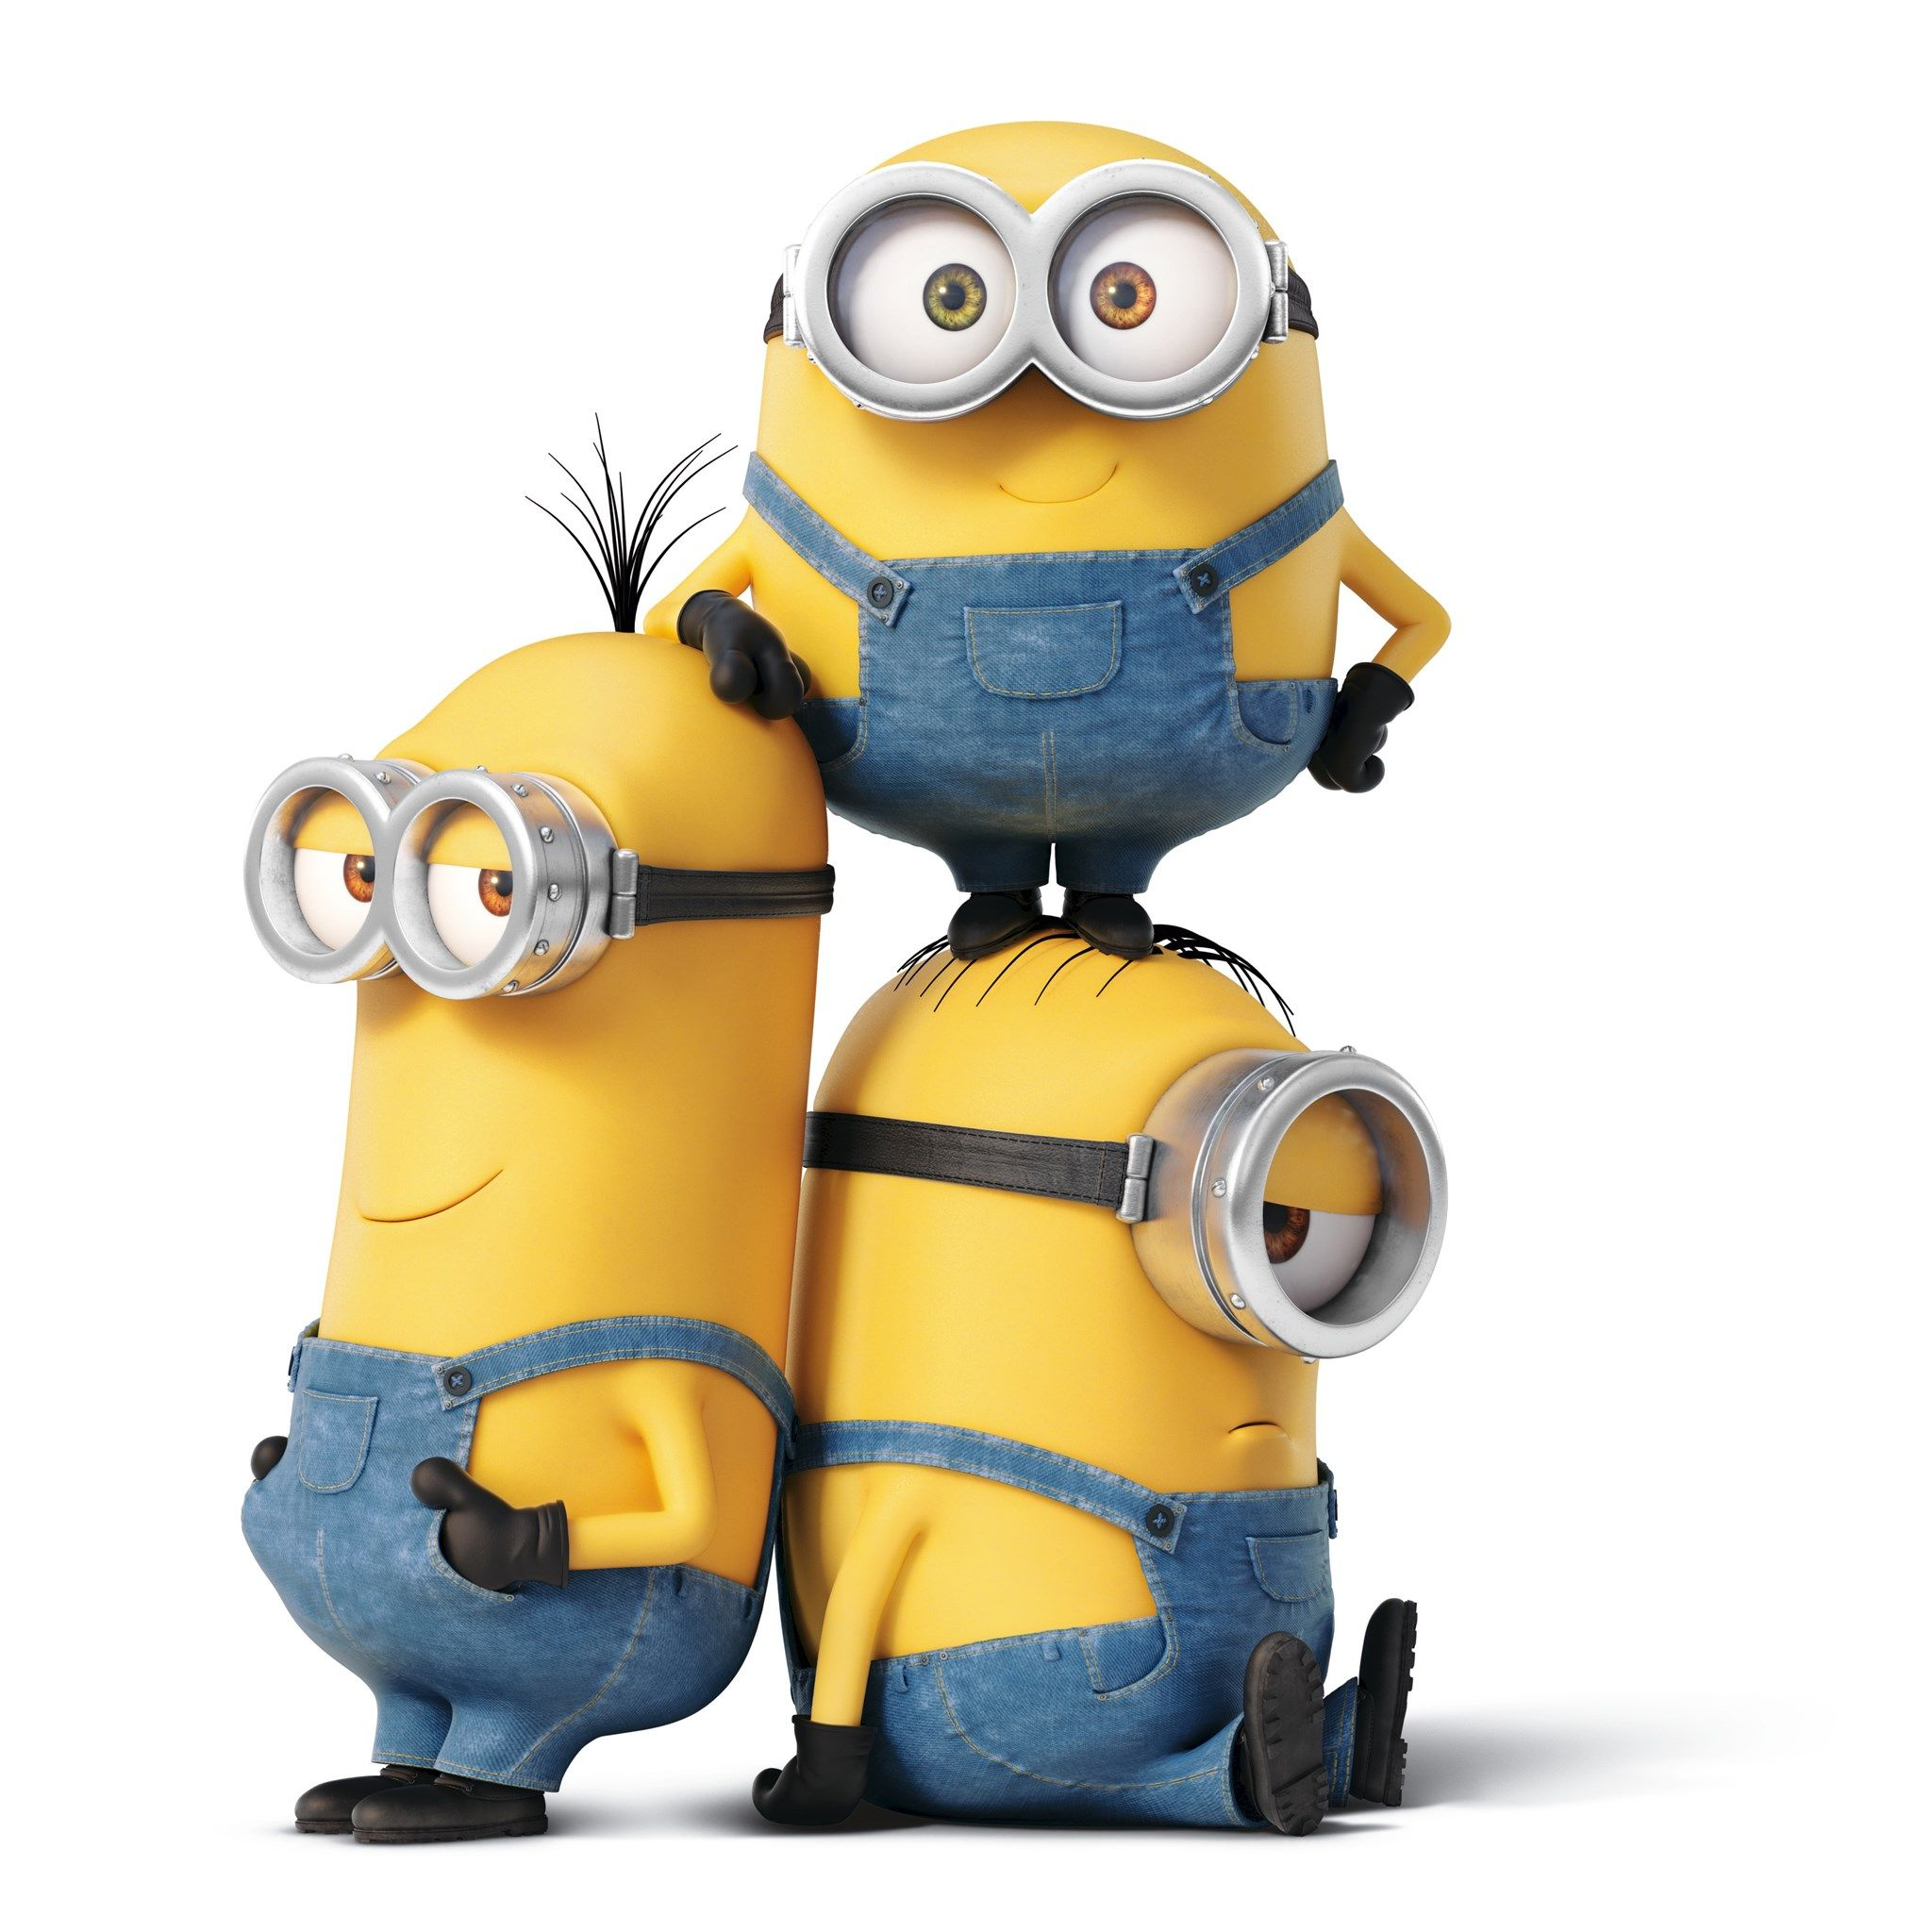 Minions Official Trailer 1 2015 Despicable Me Prequel Hd Jerry S Hollywoodland Amusement And Trailer Park Minion Movie Minions Minions Wallpaper